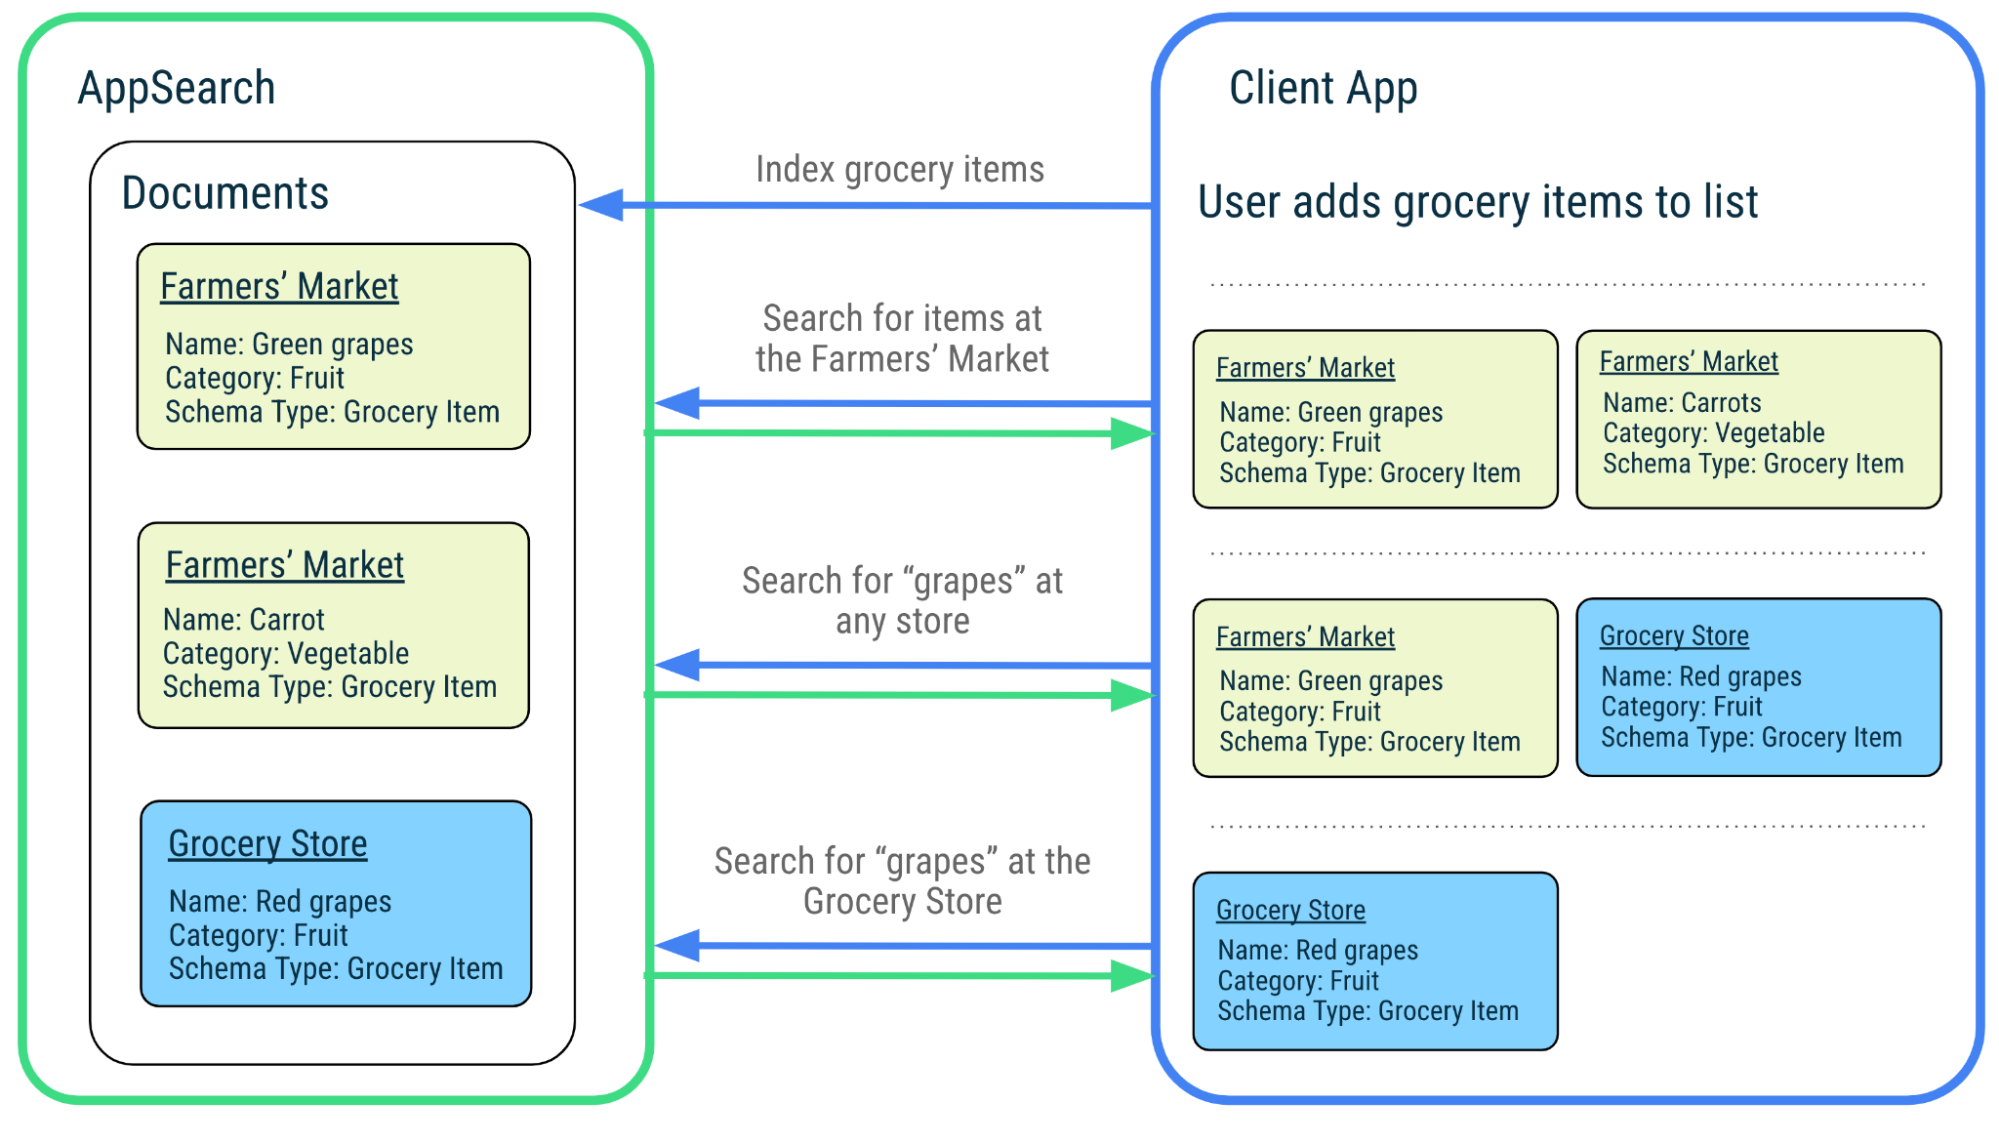 Diagram illustrating the indexing of grocery list items in AppSearch, and searching for those items later